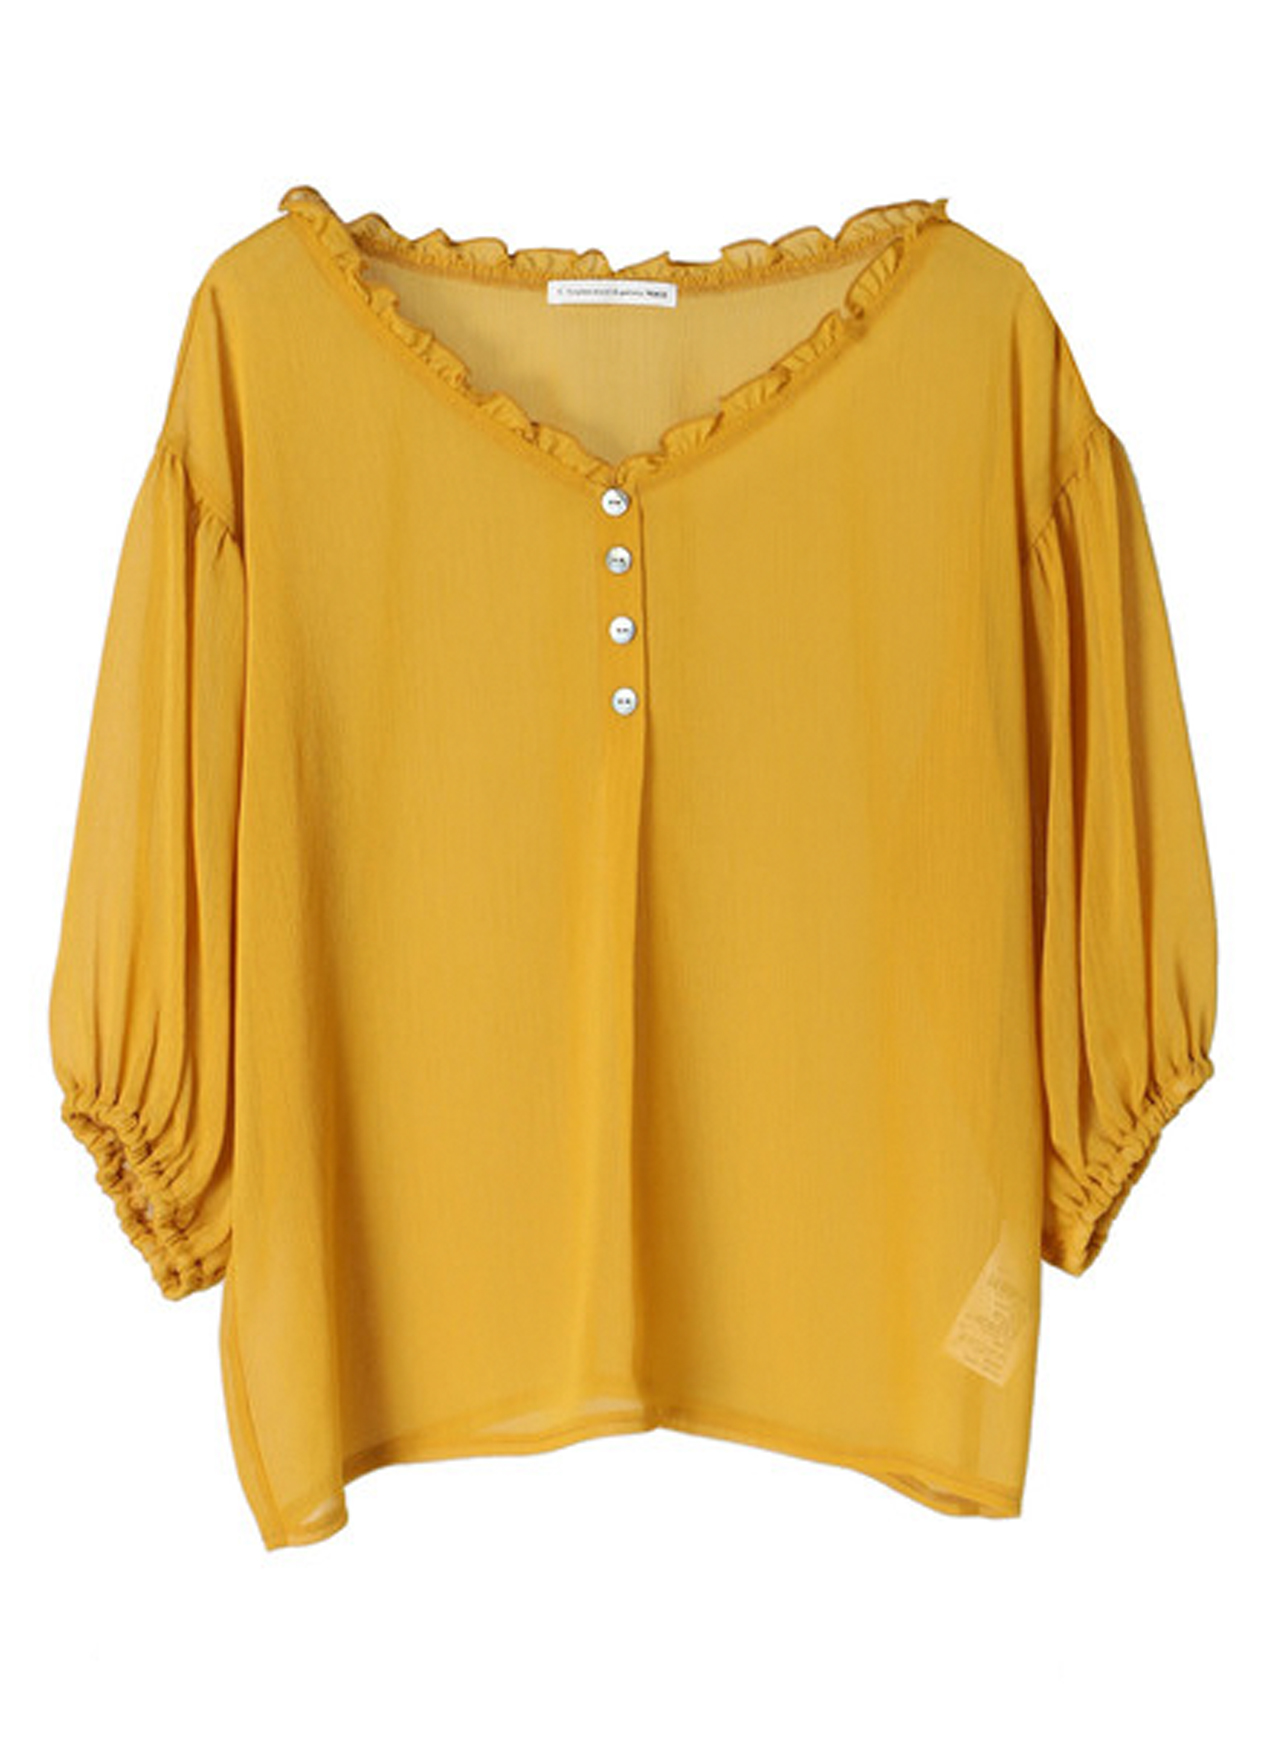 E-hyphen World Gallery Janicka Top - Yellow